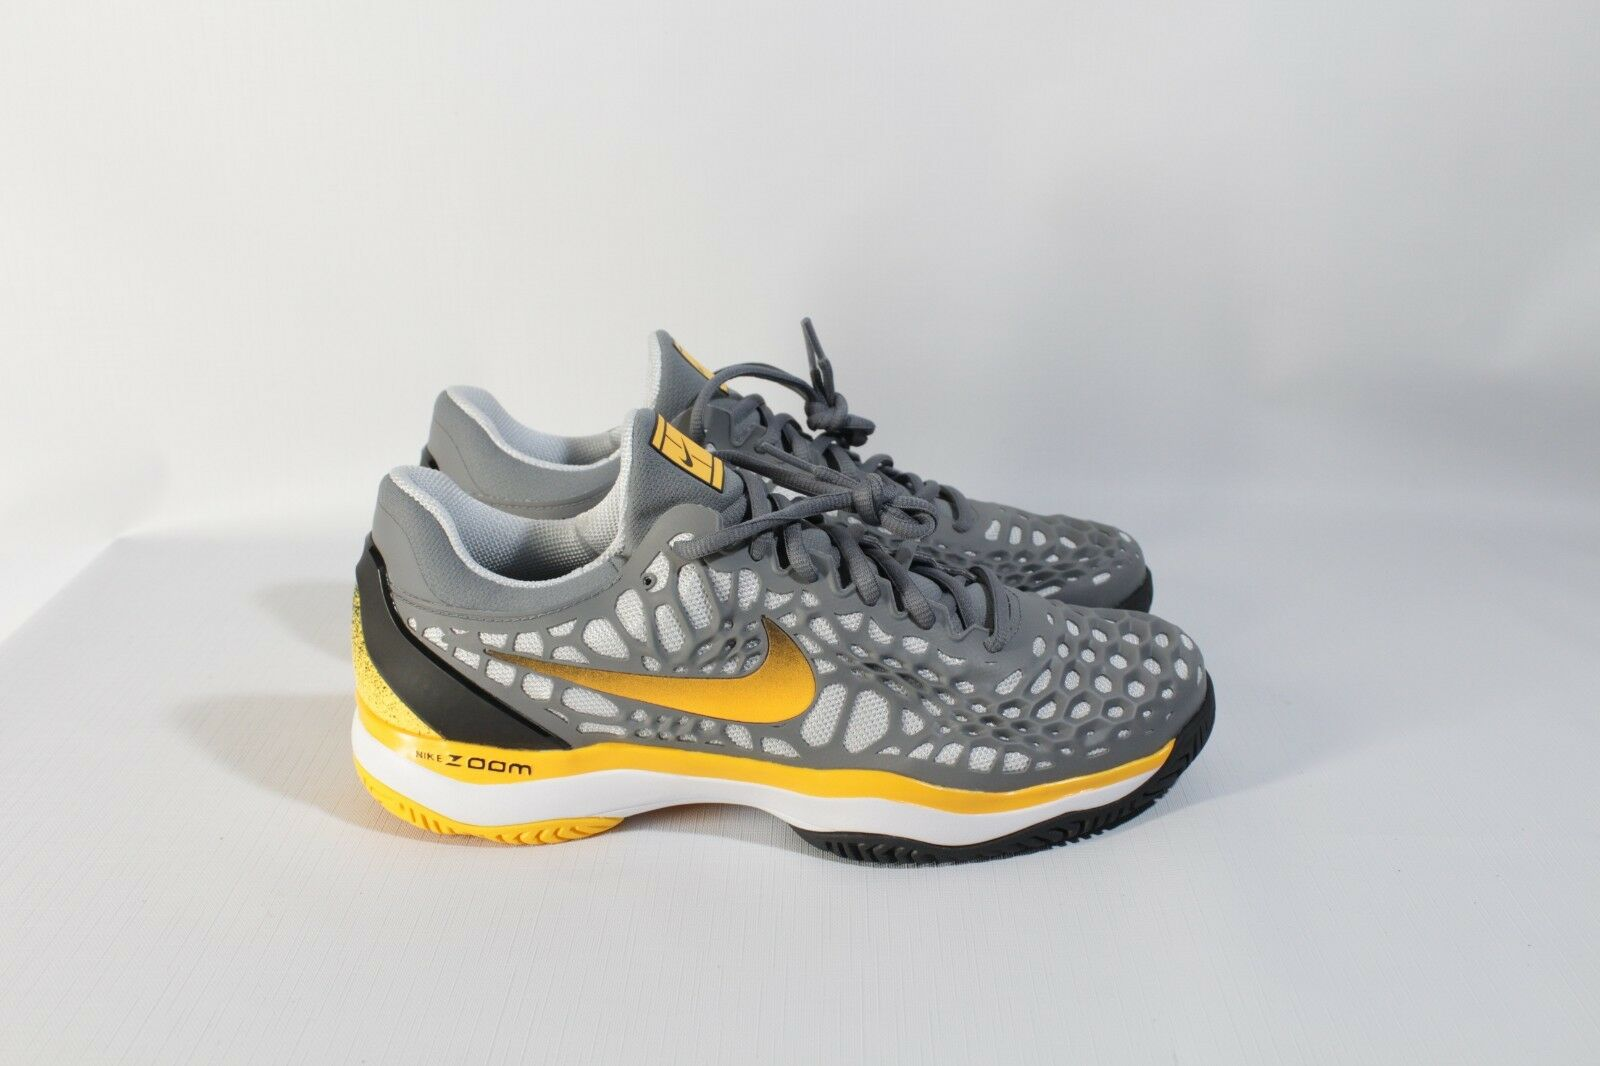 Nike Court Zoom Cage 3 Men's Tennis shoes 918193-003 Size 11